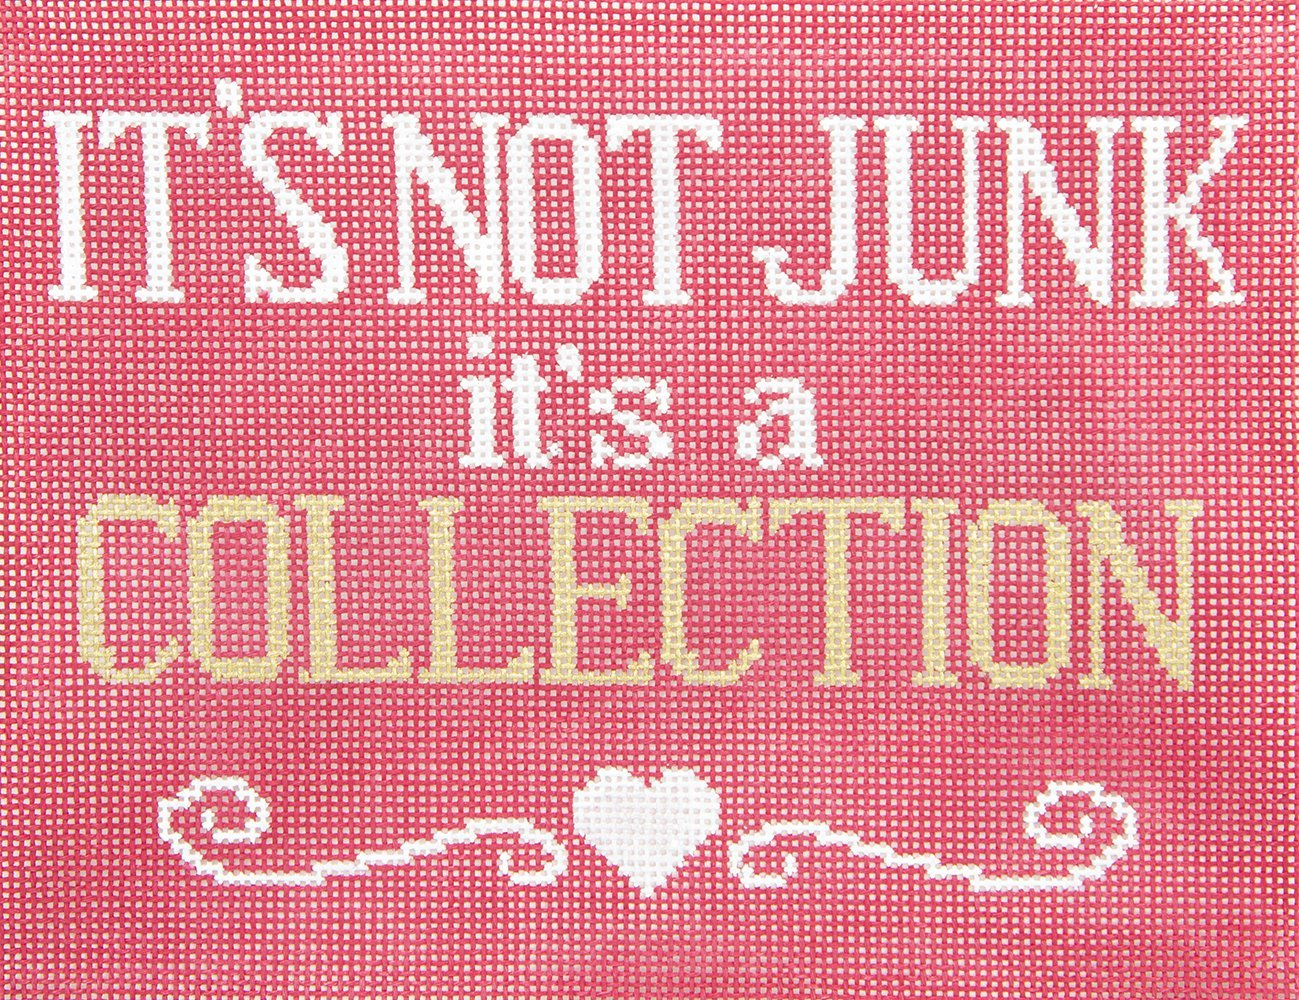 S442 It's Not Junk?. Point of It All Designs